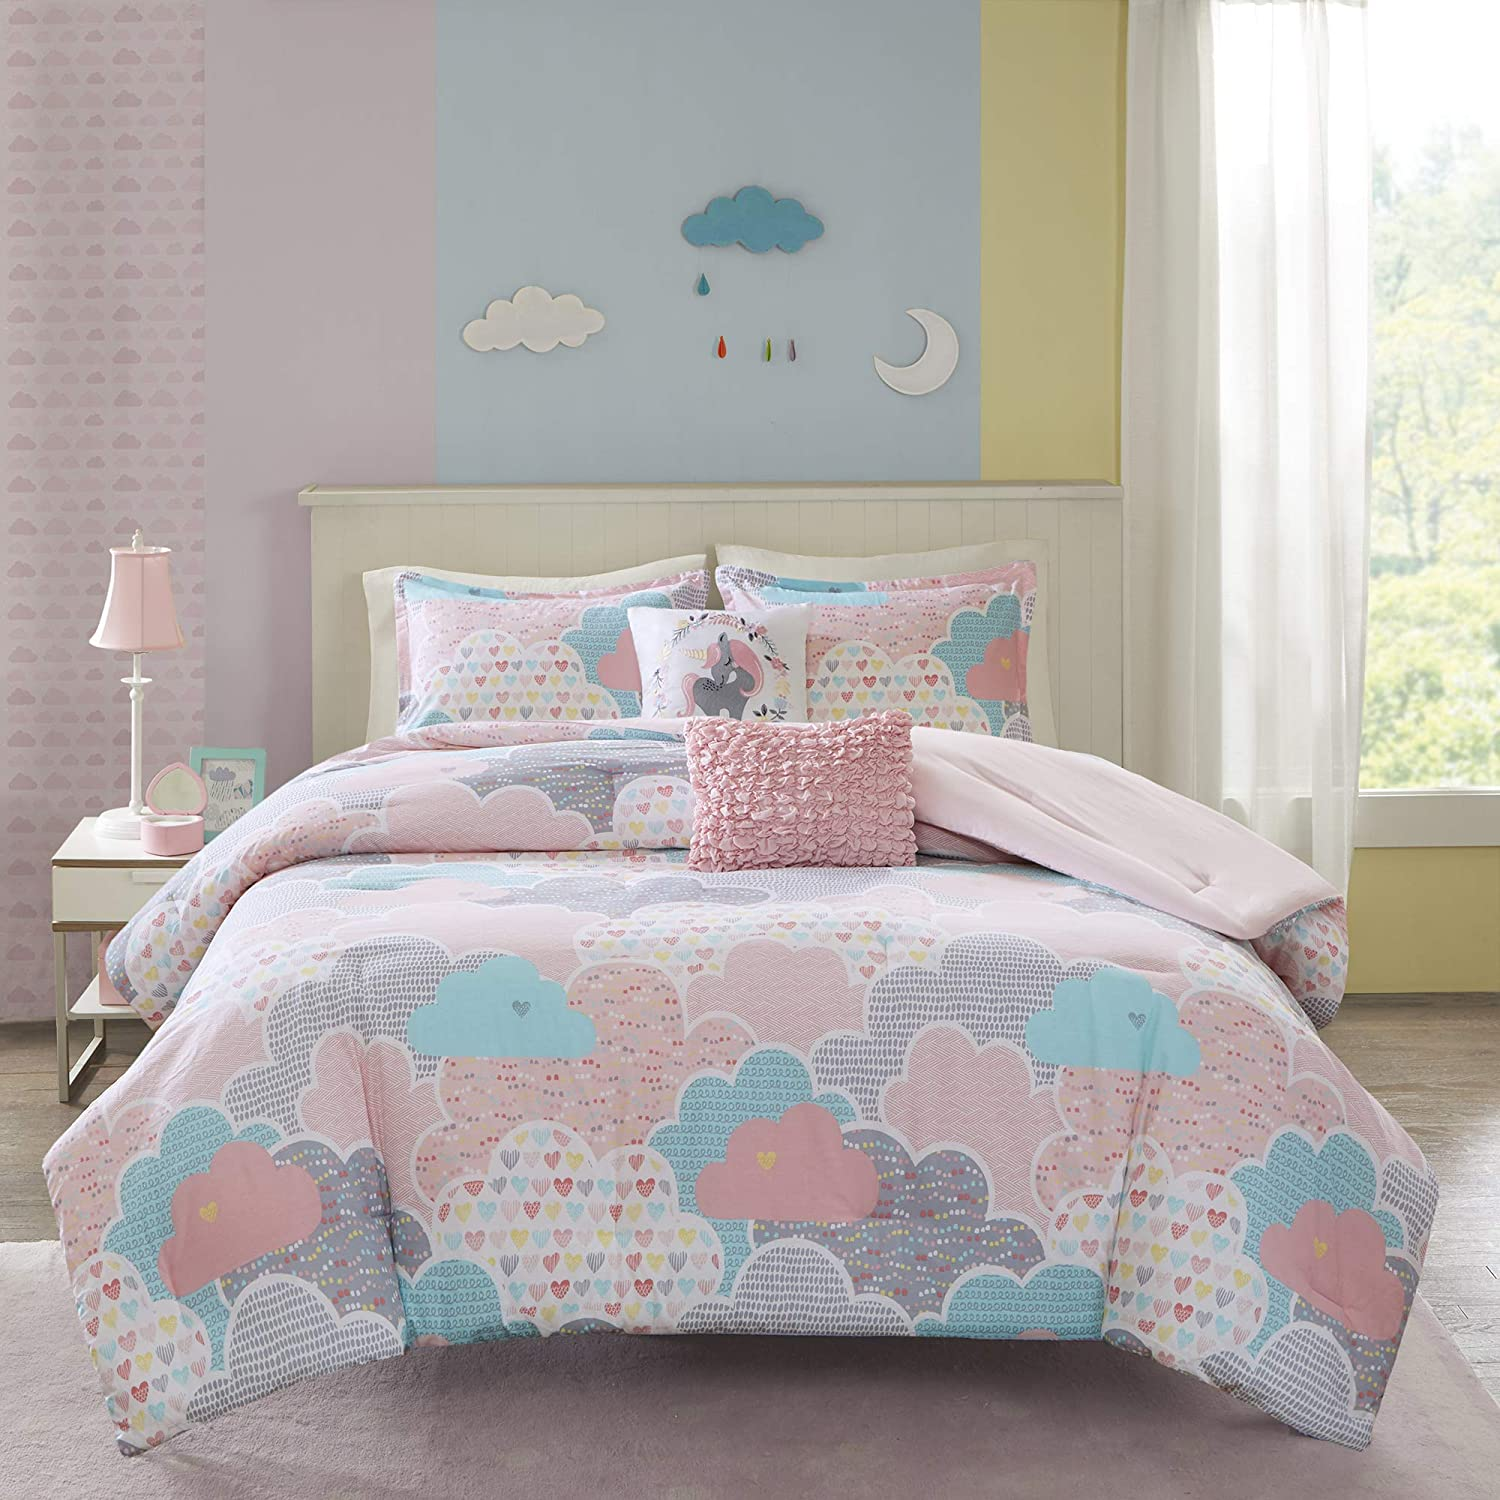 Urban Habitat Kids Comforter Vibrant Fun and Playful Unicorn Print Down Alternative All Season Children Bedding-Set, Girls Bedroom Décor, Full/Queen, Pink